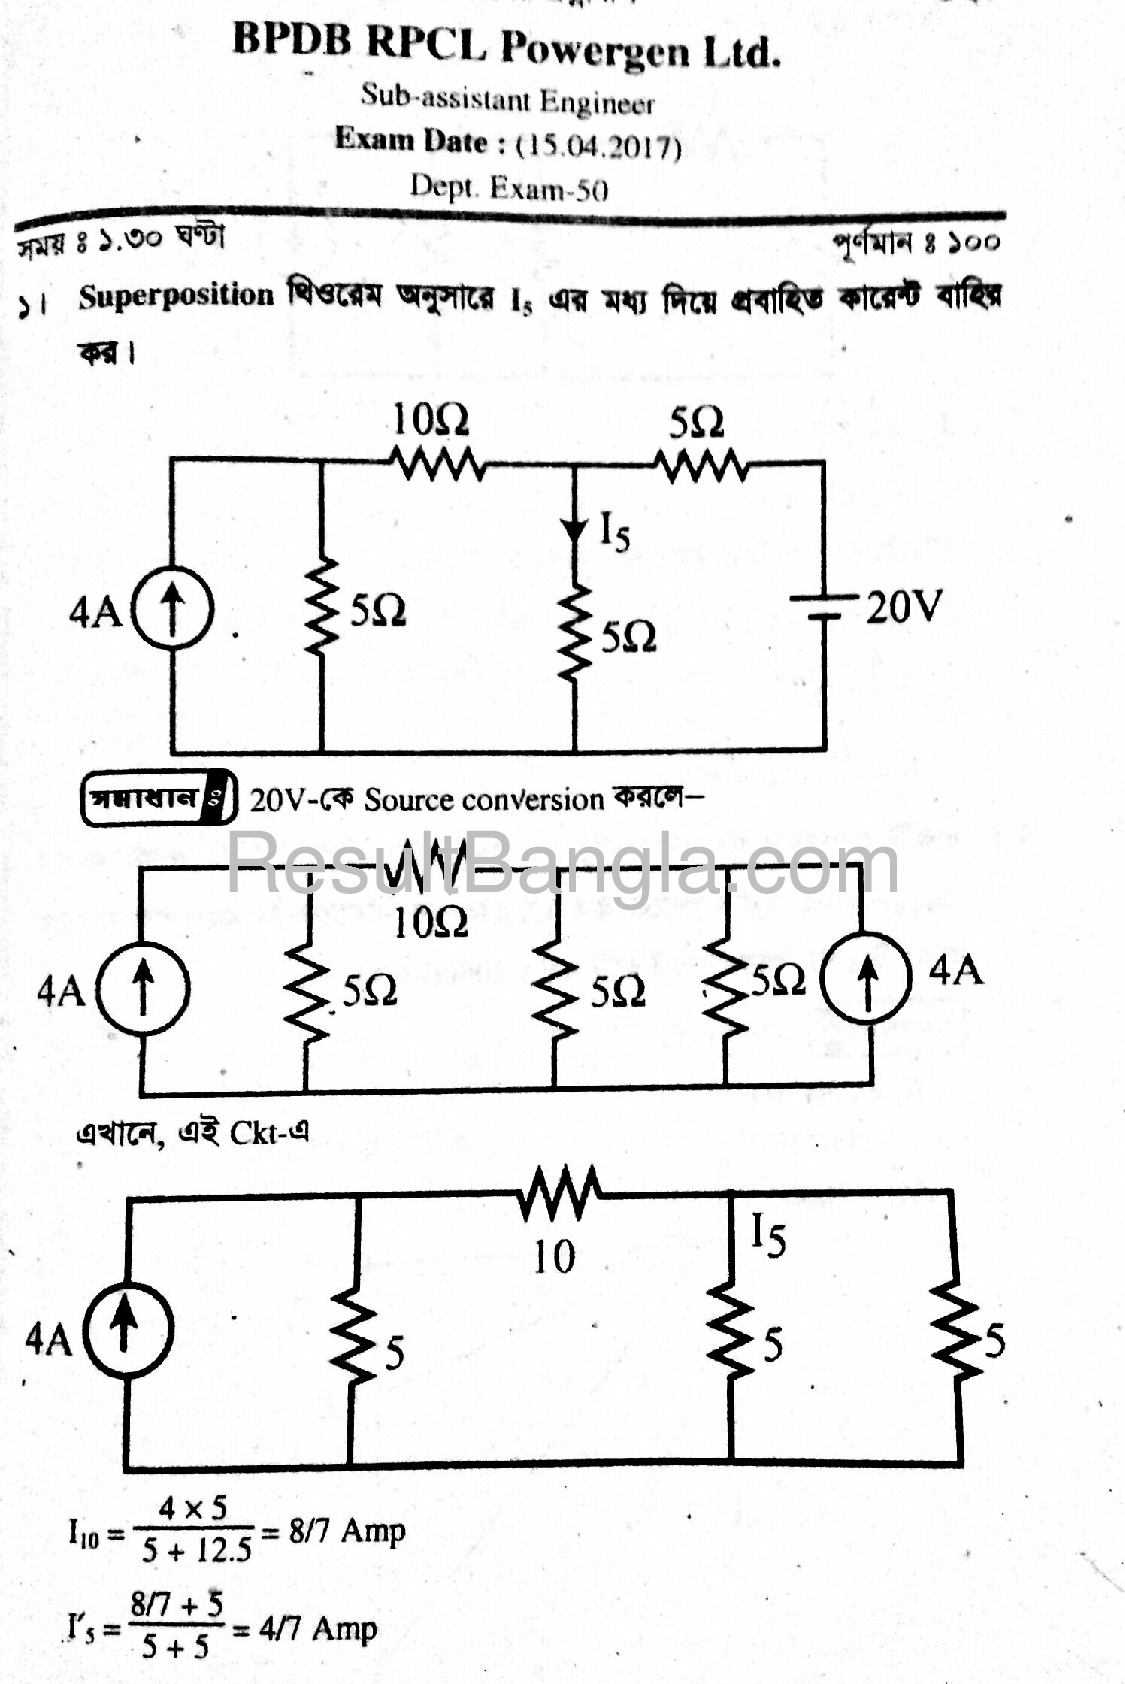 BPDB RPCL Question Solution 2017